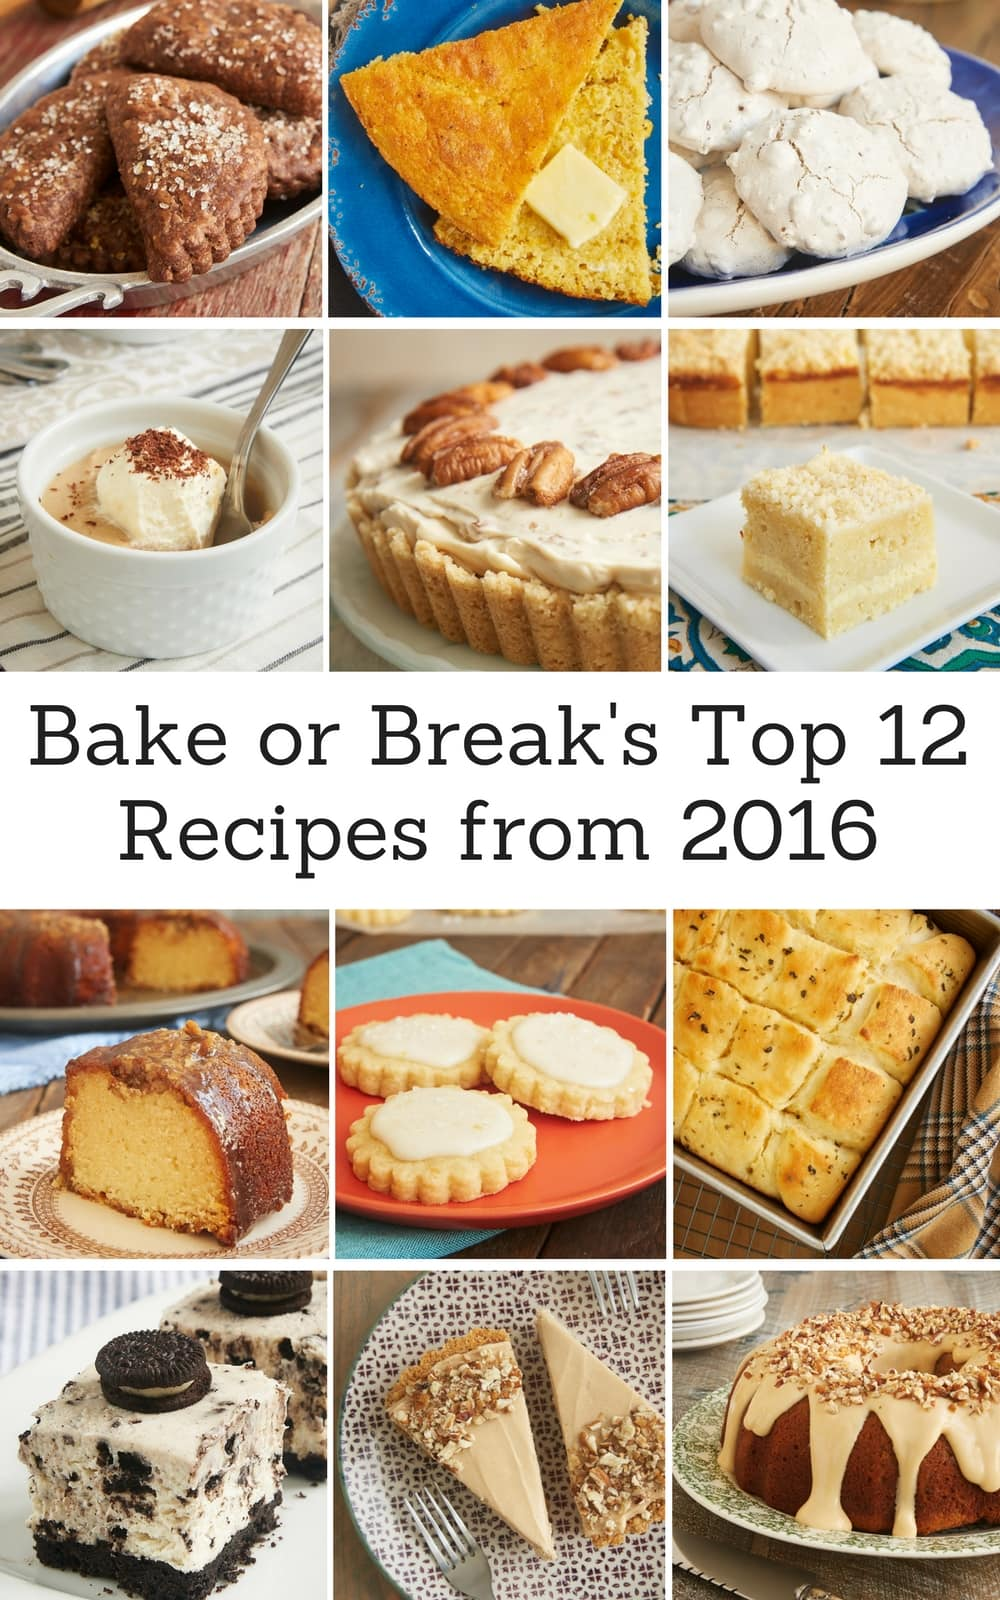 The most popular, most pinned, most saved, most liked recipes from 2016! - Bake or Break